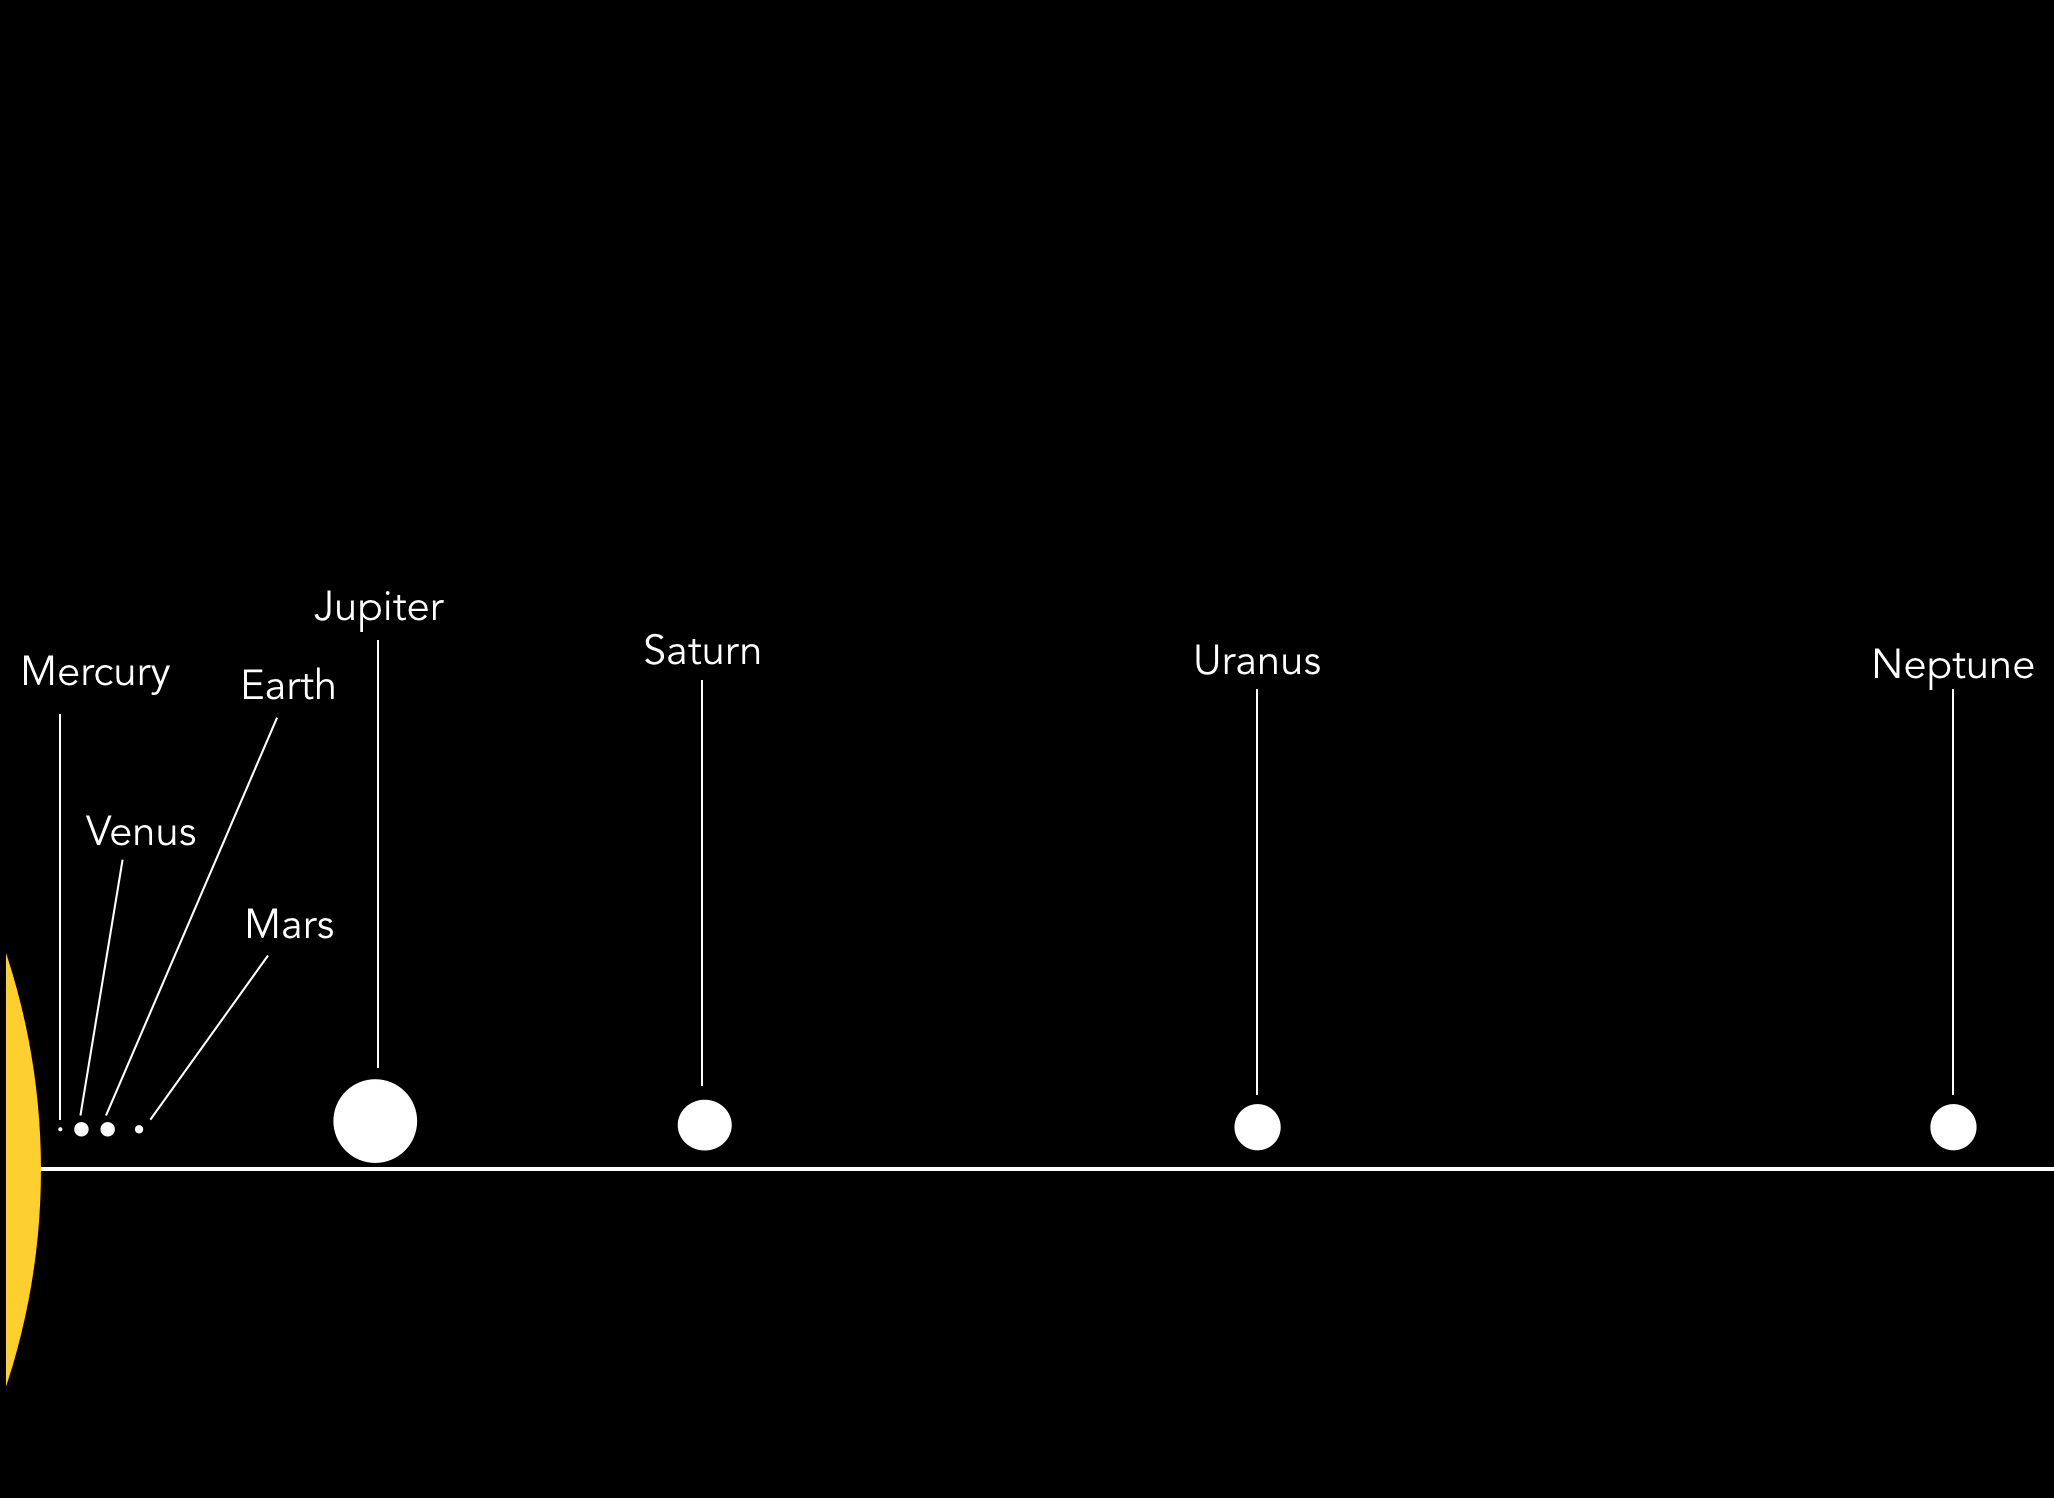 Scale of the Solar System planets radii and distances (each relative, radius is not relative to distance)